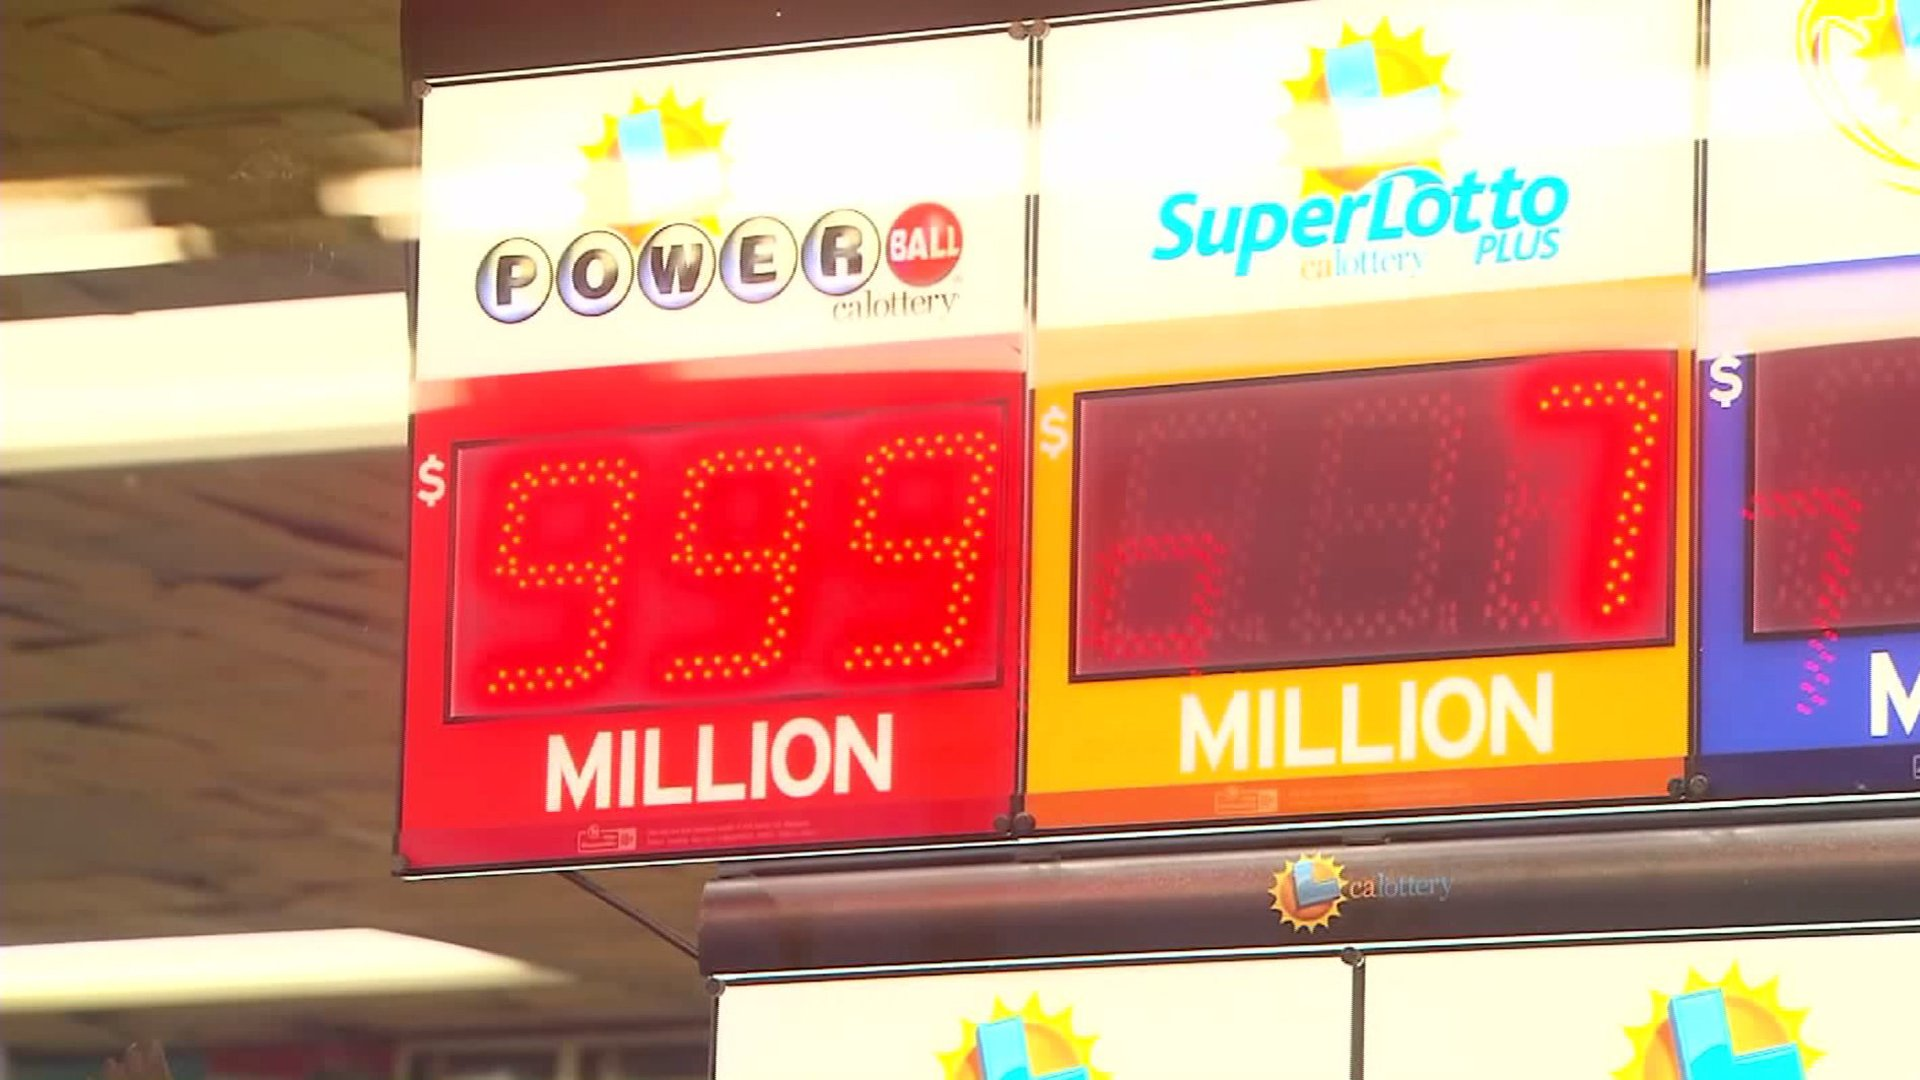 wednesday powerball drawing time photo - 1